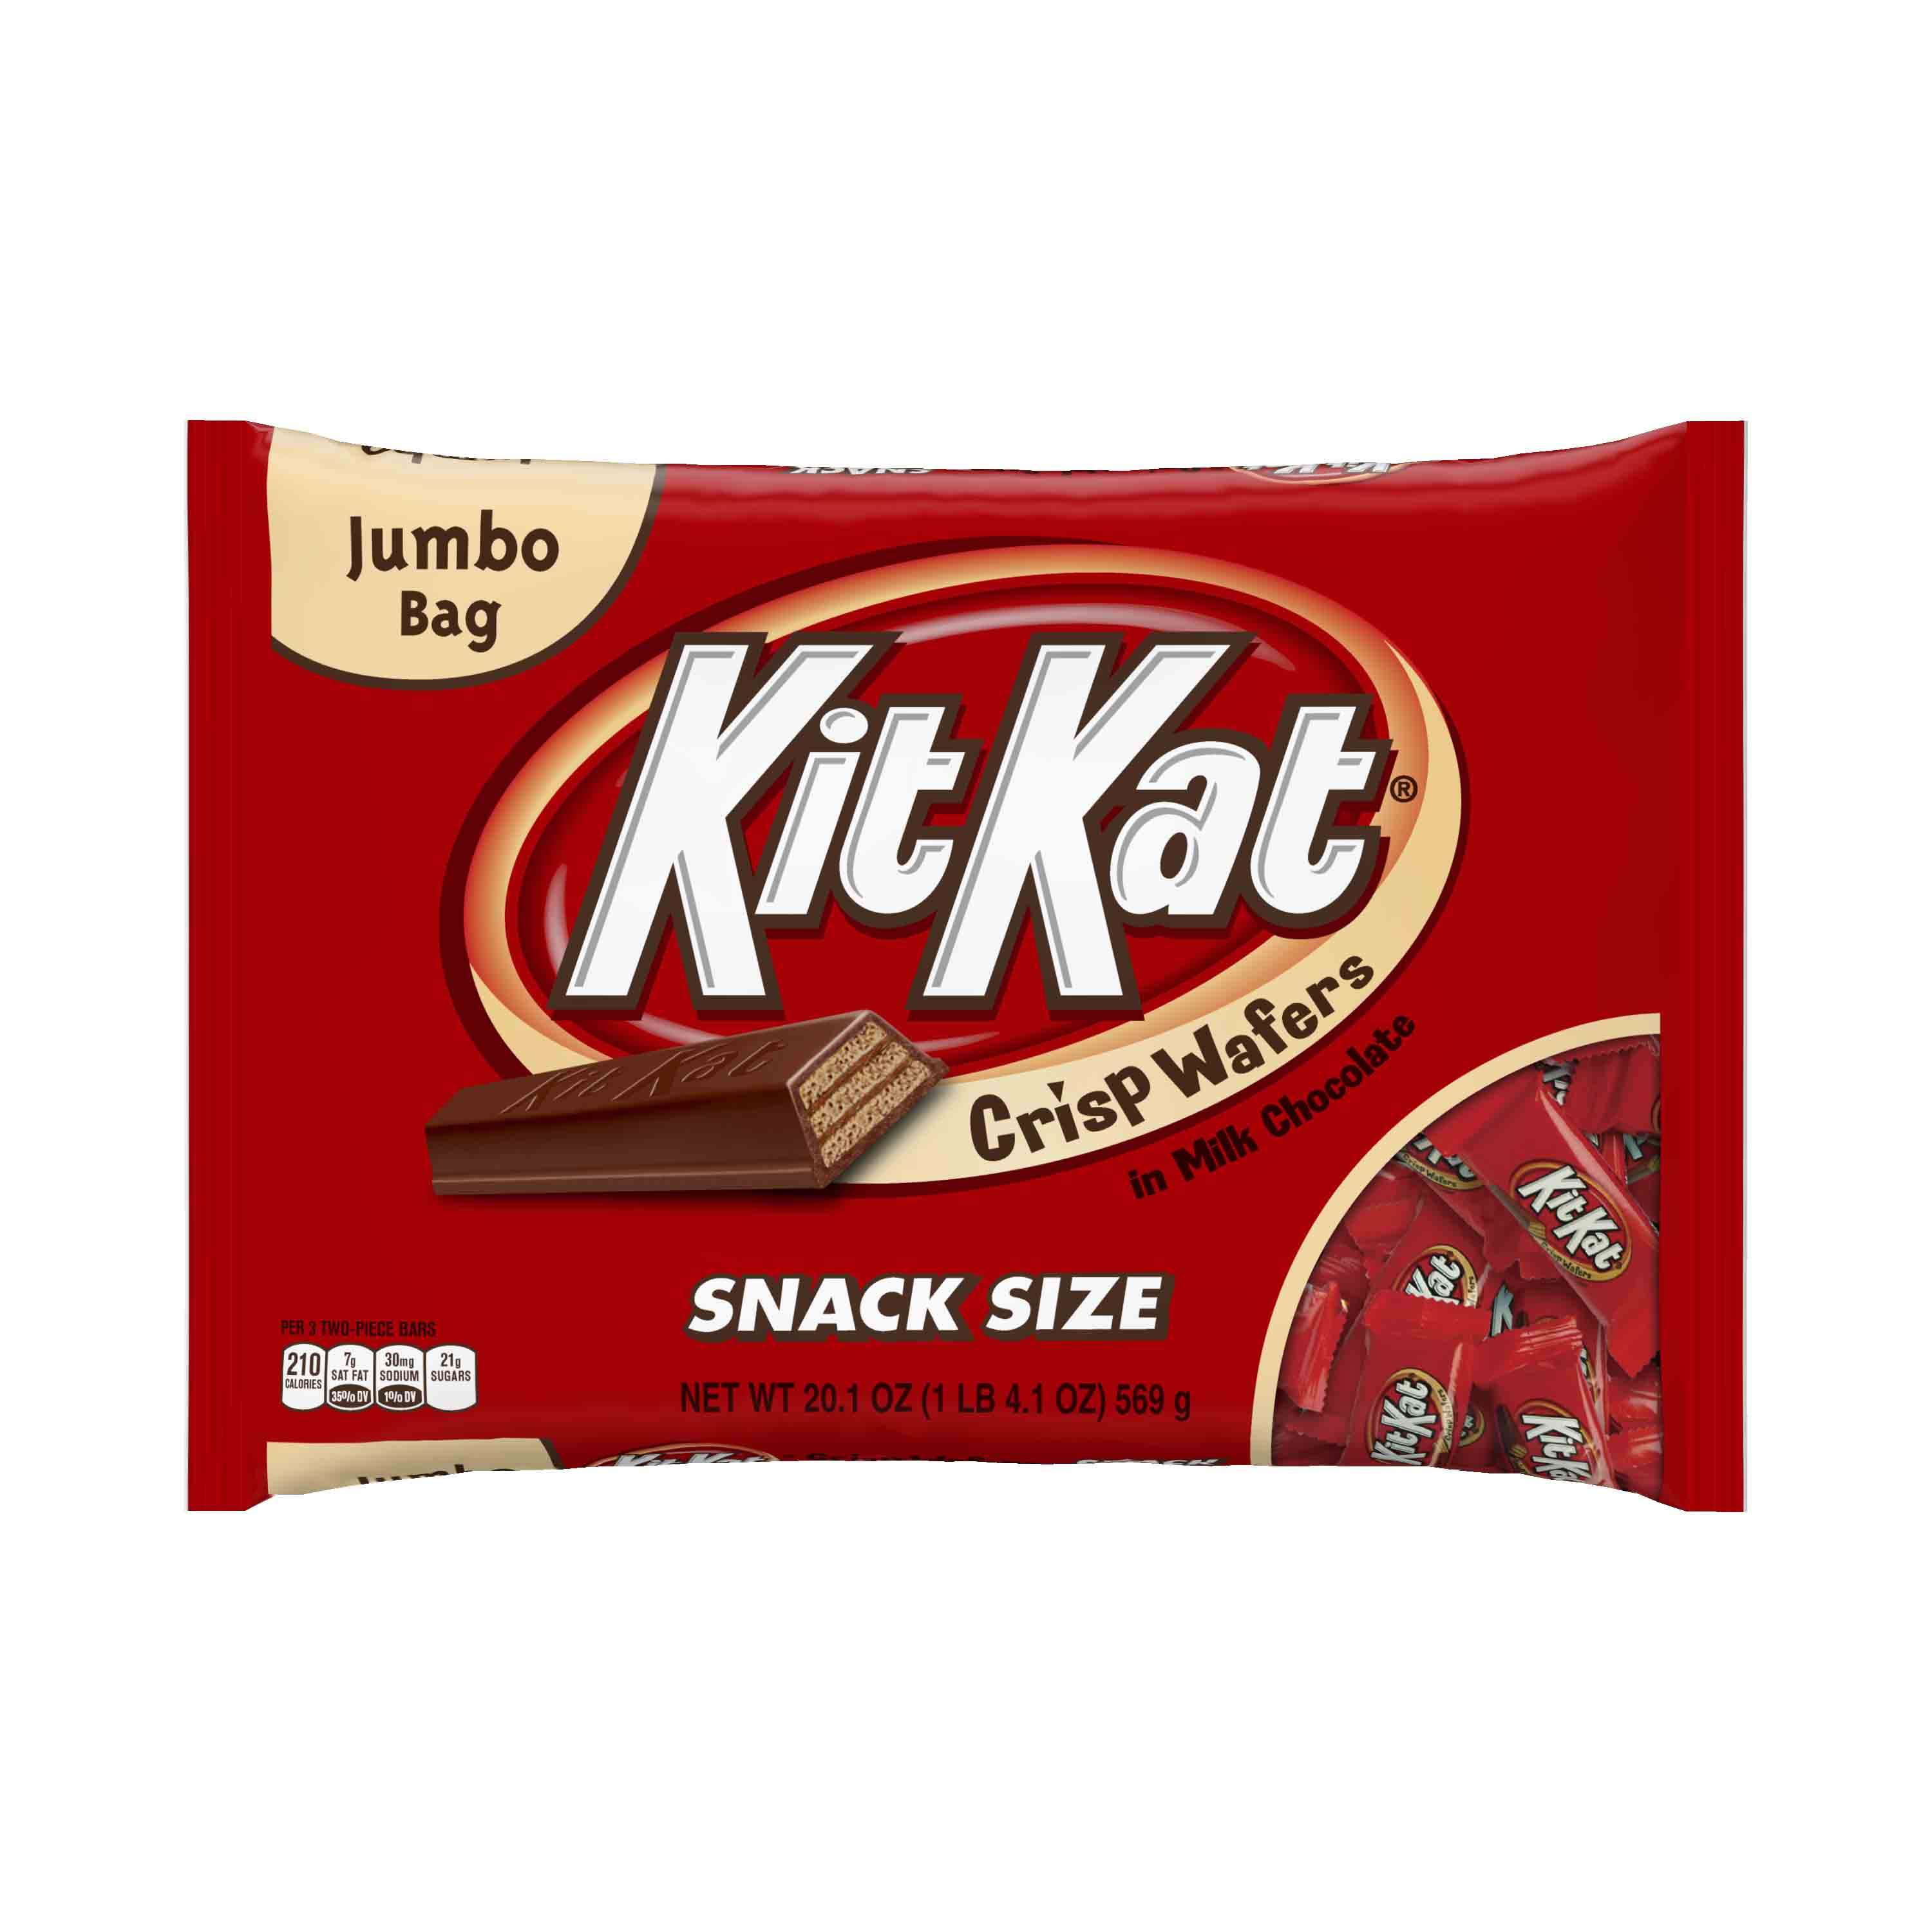 (2 Pack) Kit Kat, Crisp Wafer Milk Chocolate Candy Bars Snack Size, 20.1 Oz